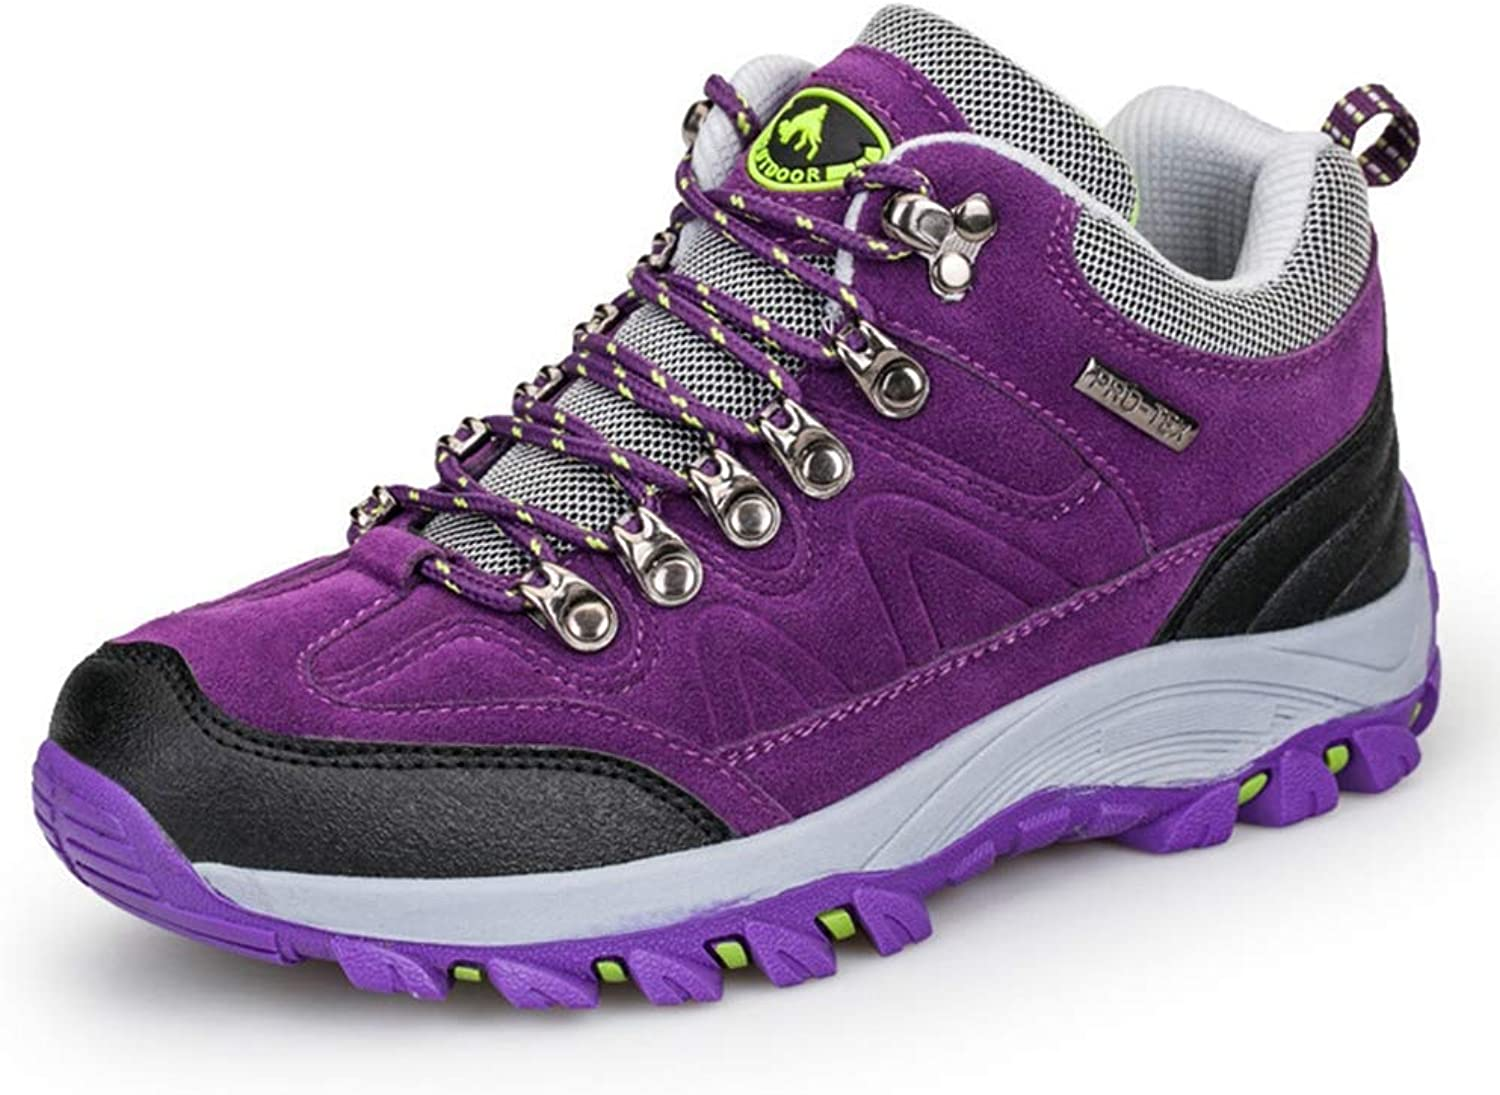 Fullwill Womens Hiking shoes Outdoor Waterproof Sports Trail Trekking Climbing Running Walking Sneakers